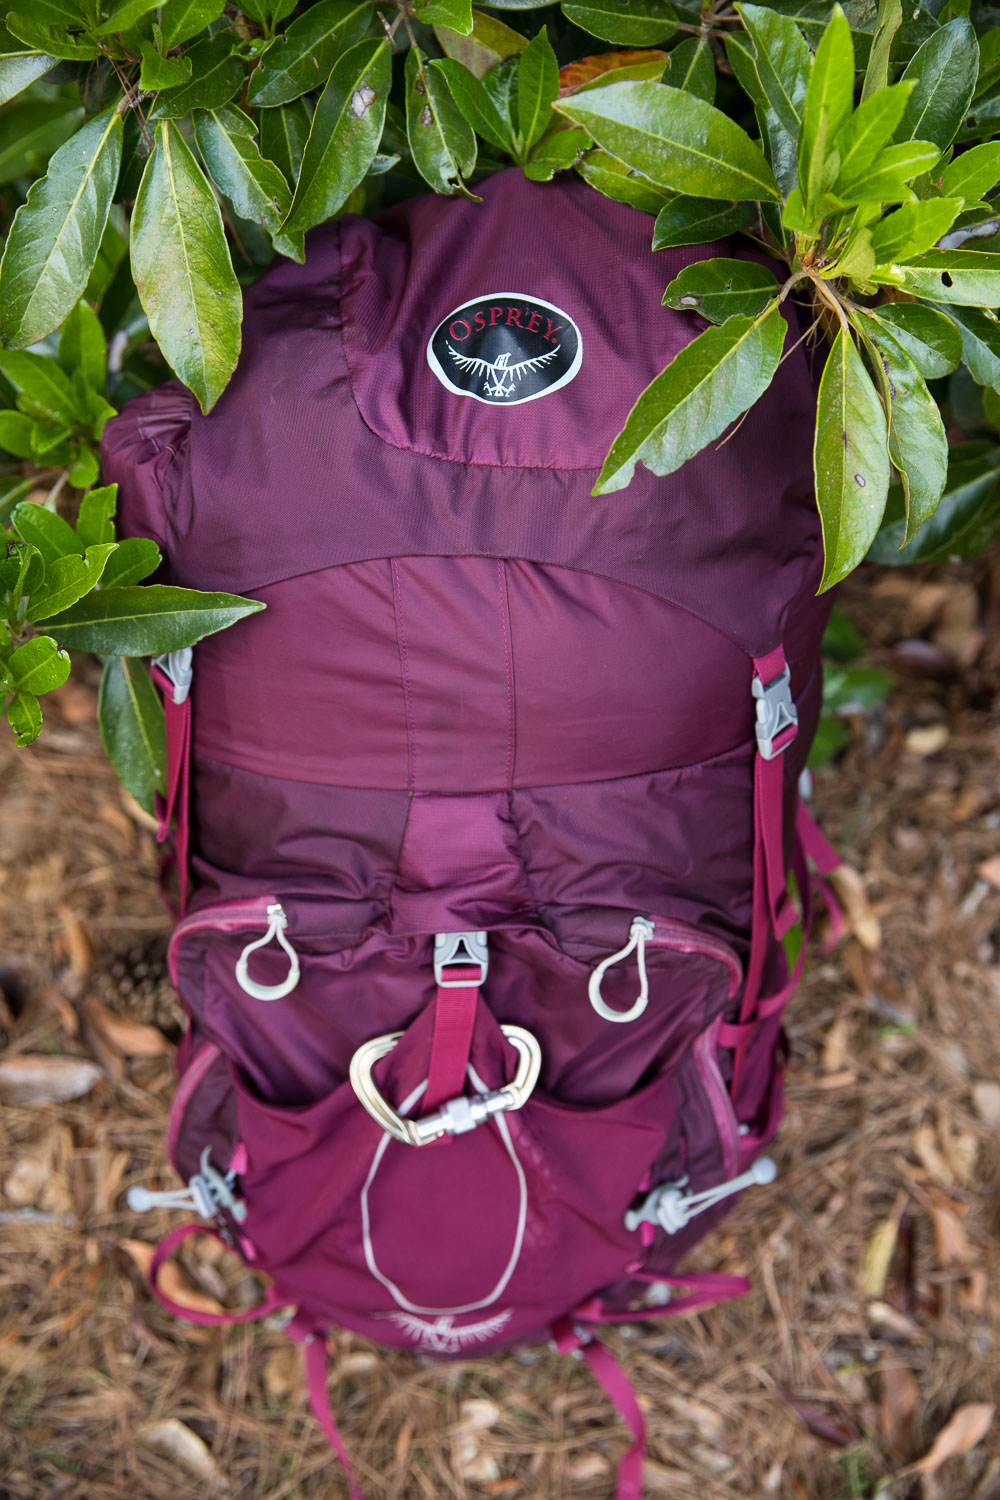 Backpacking tips and lessons learned from a newbie